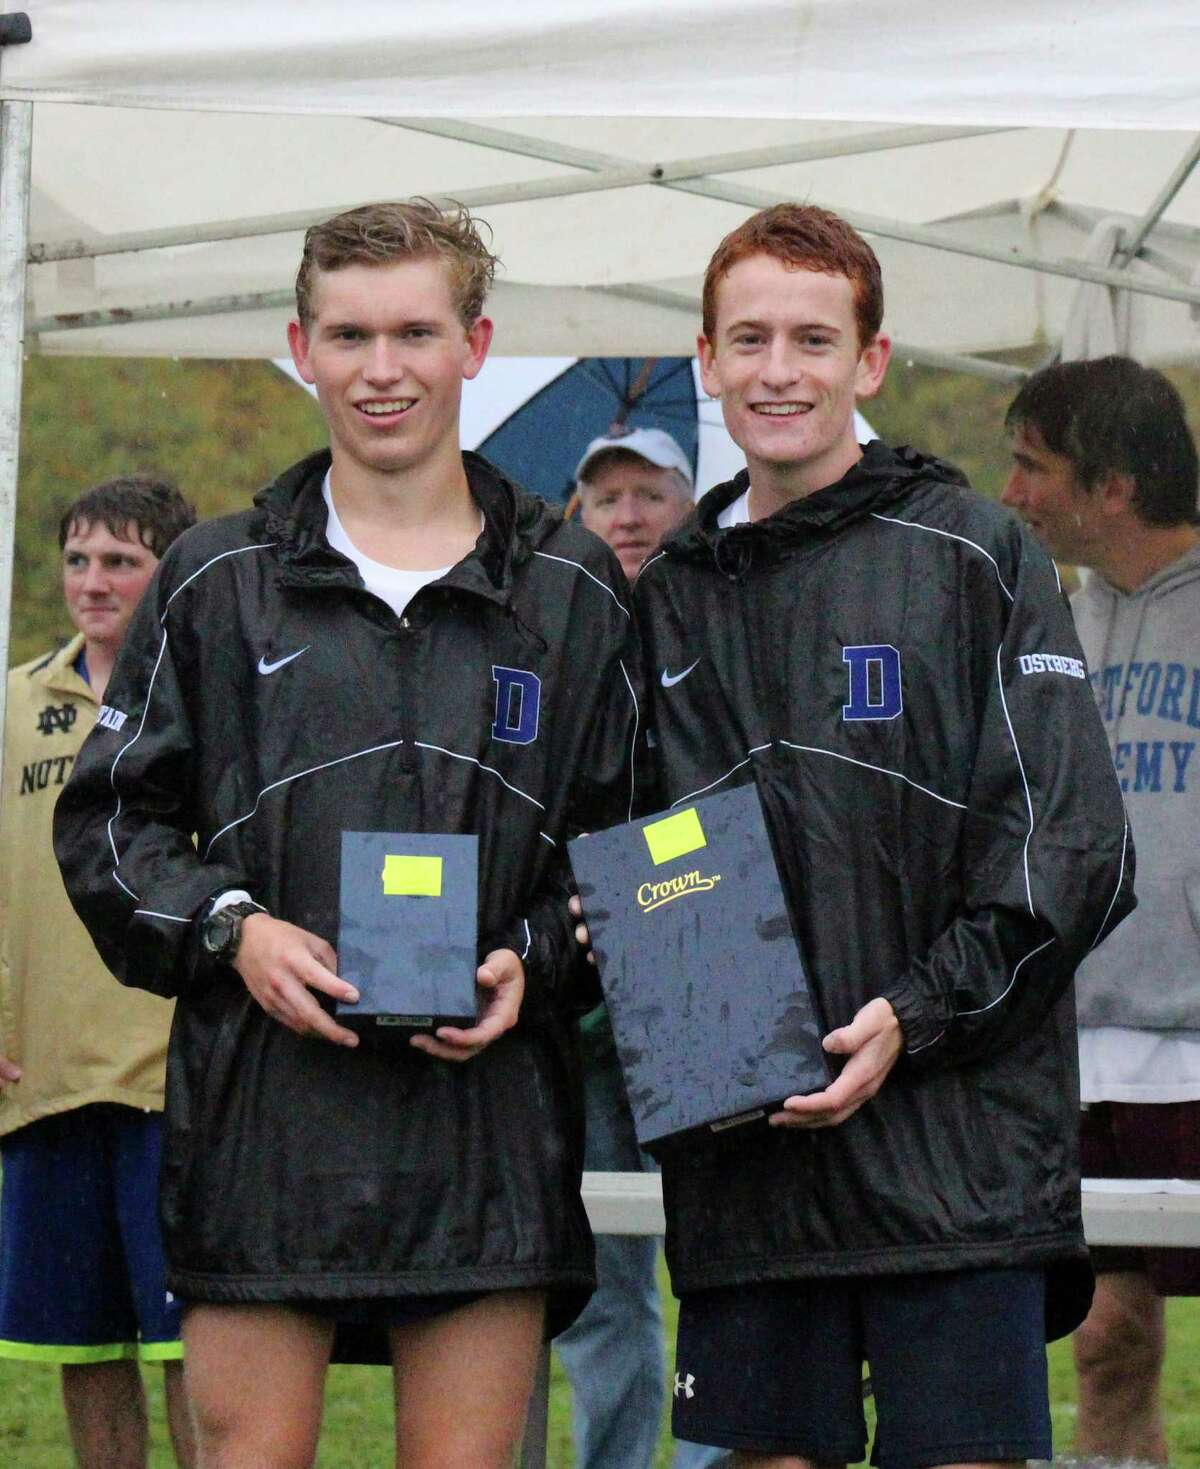 Darien's Alex Ostberg, right, and Armstrong Noonan, left, and pose after finishing first and second, respectively, at the Woods Trail Run at Thetford Academy in Thetford, V.T., on Saturday, Oct. 4.